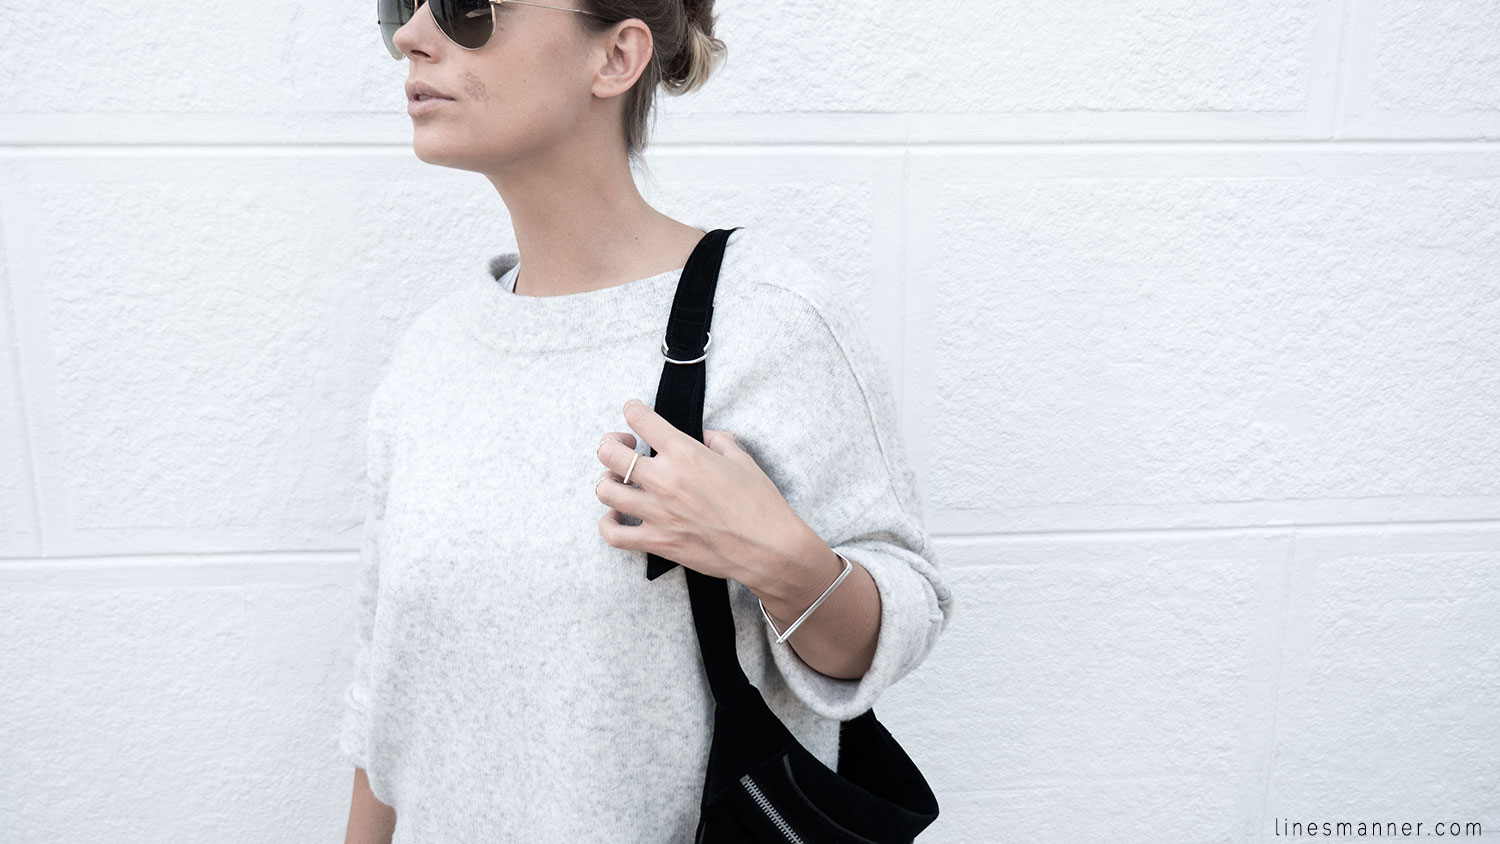 Lines-Manner-Remind-2015-Minimal-Essential-Outfit-Inspiration-Blog-Timeless-Year-Seasons-Details-Travel-Fashion-Versatile-Clean-Sleek-Quality-37